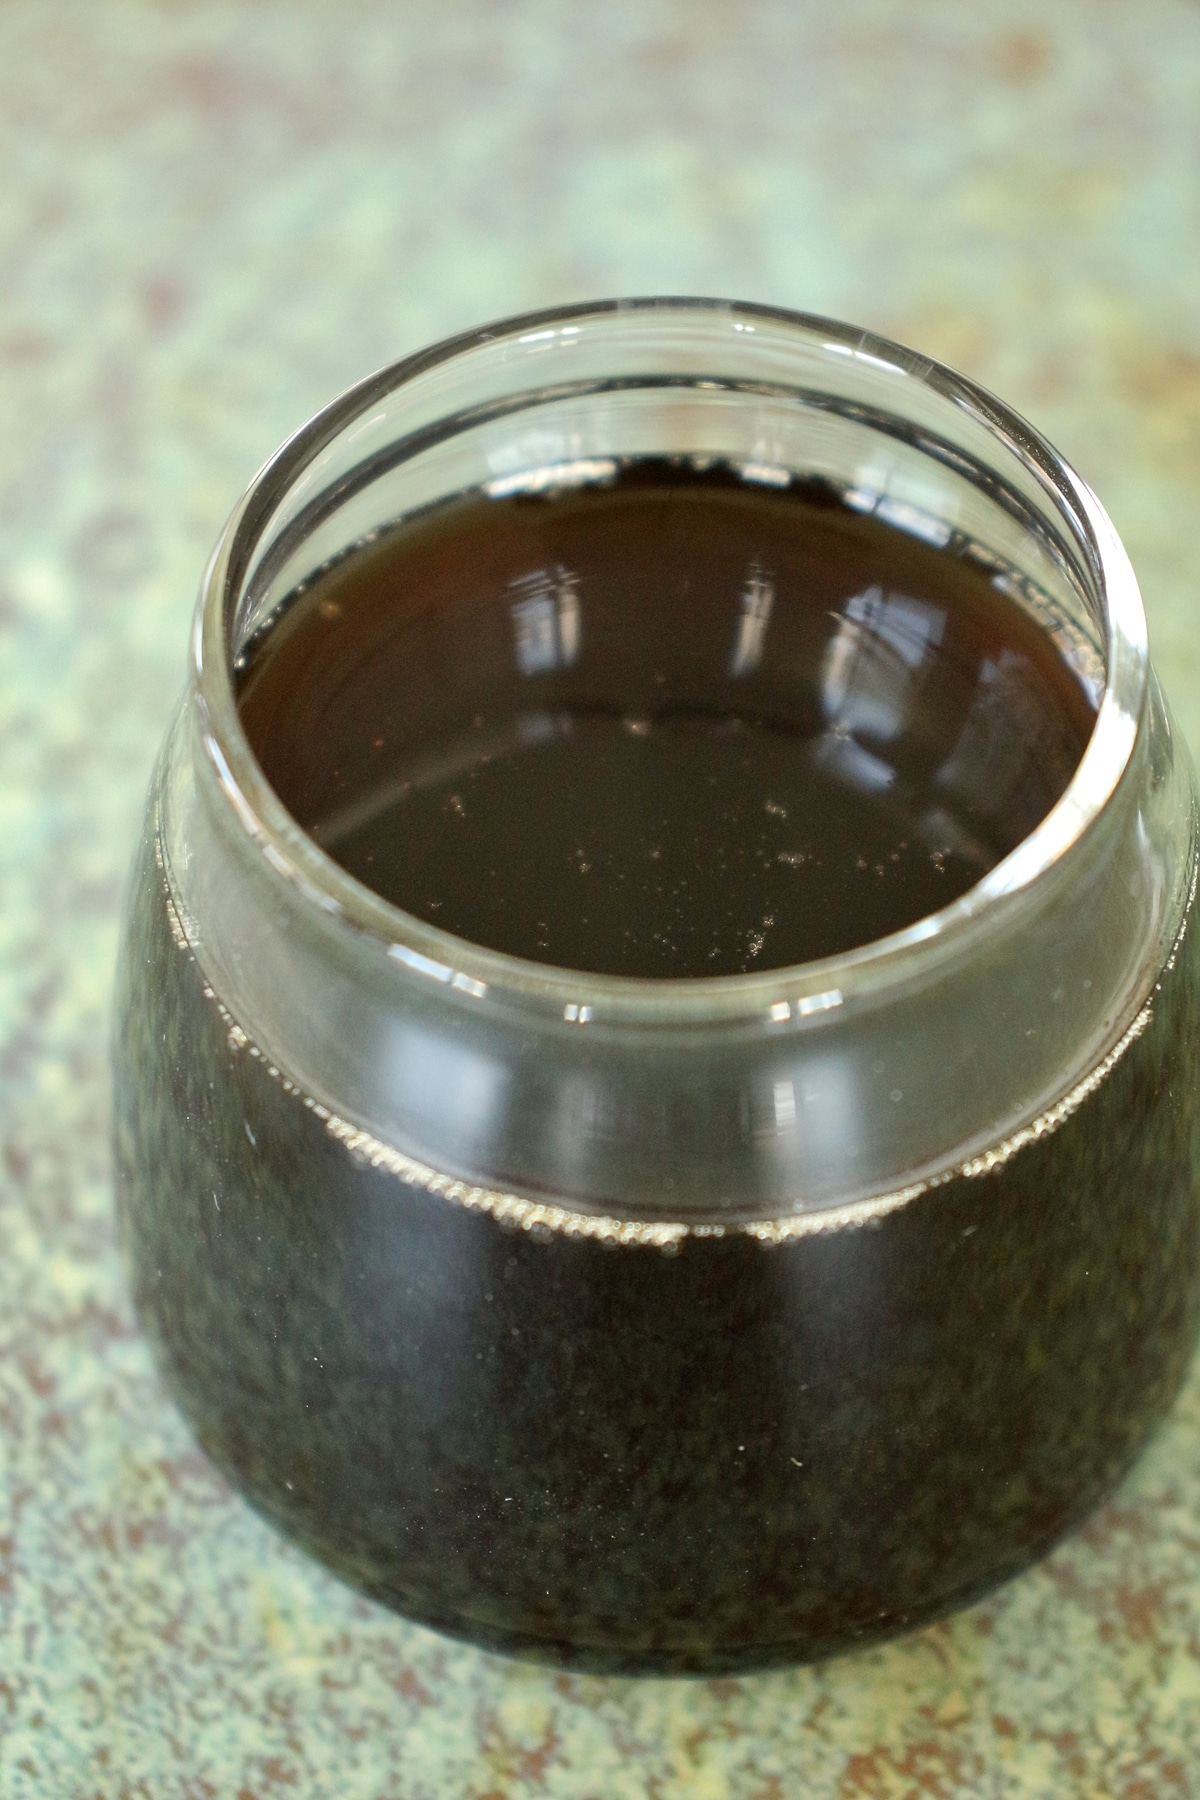 Homemade tamarind simple syrup served in a tiny jar